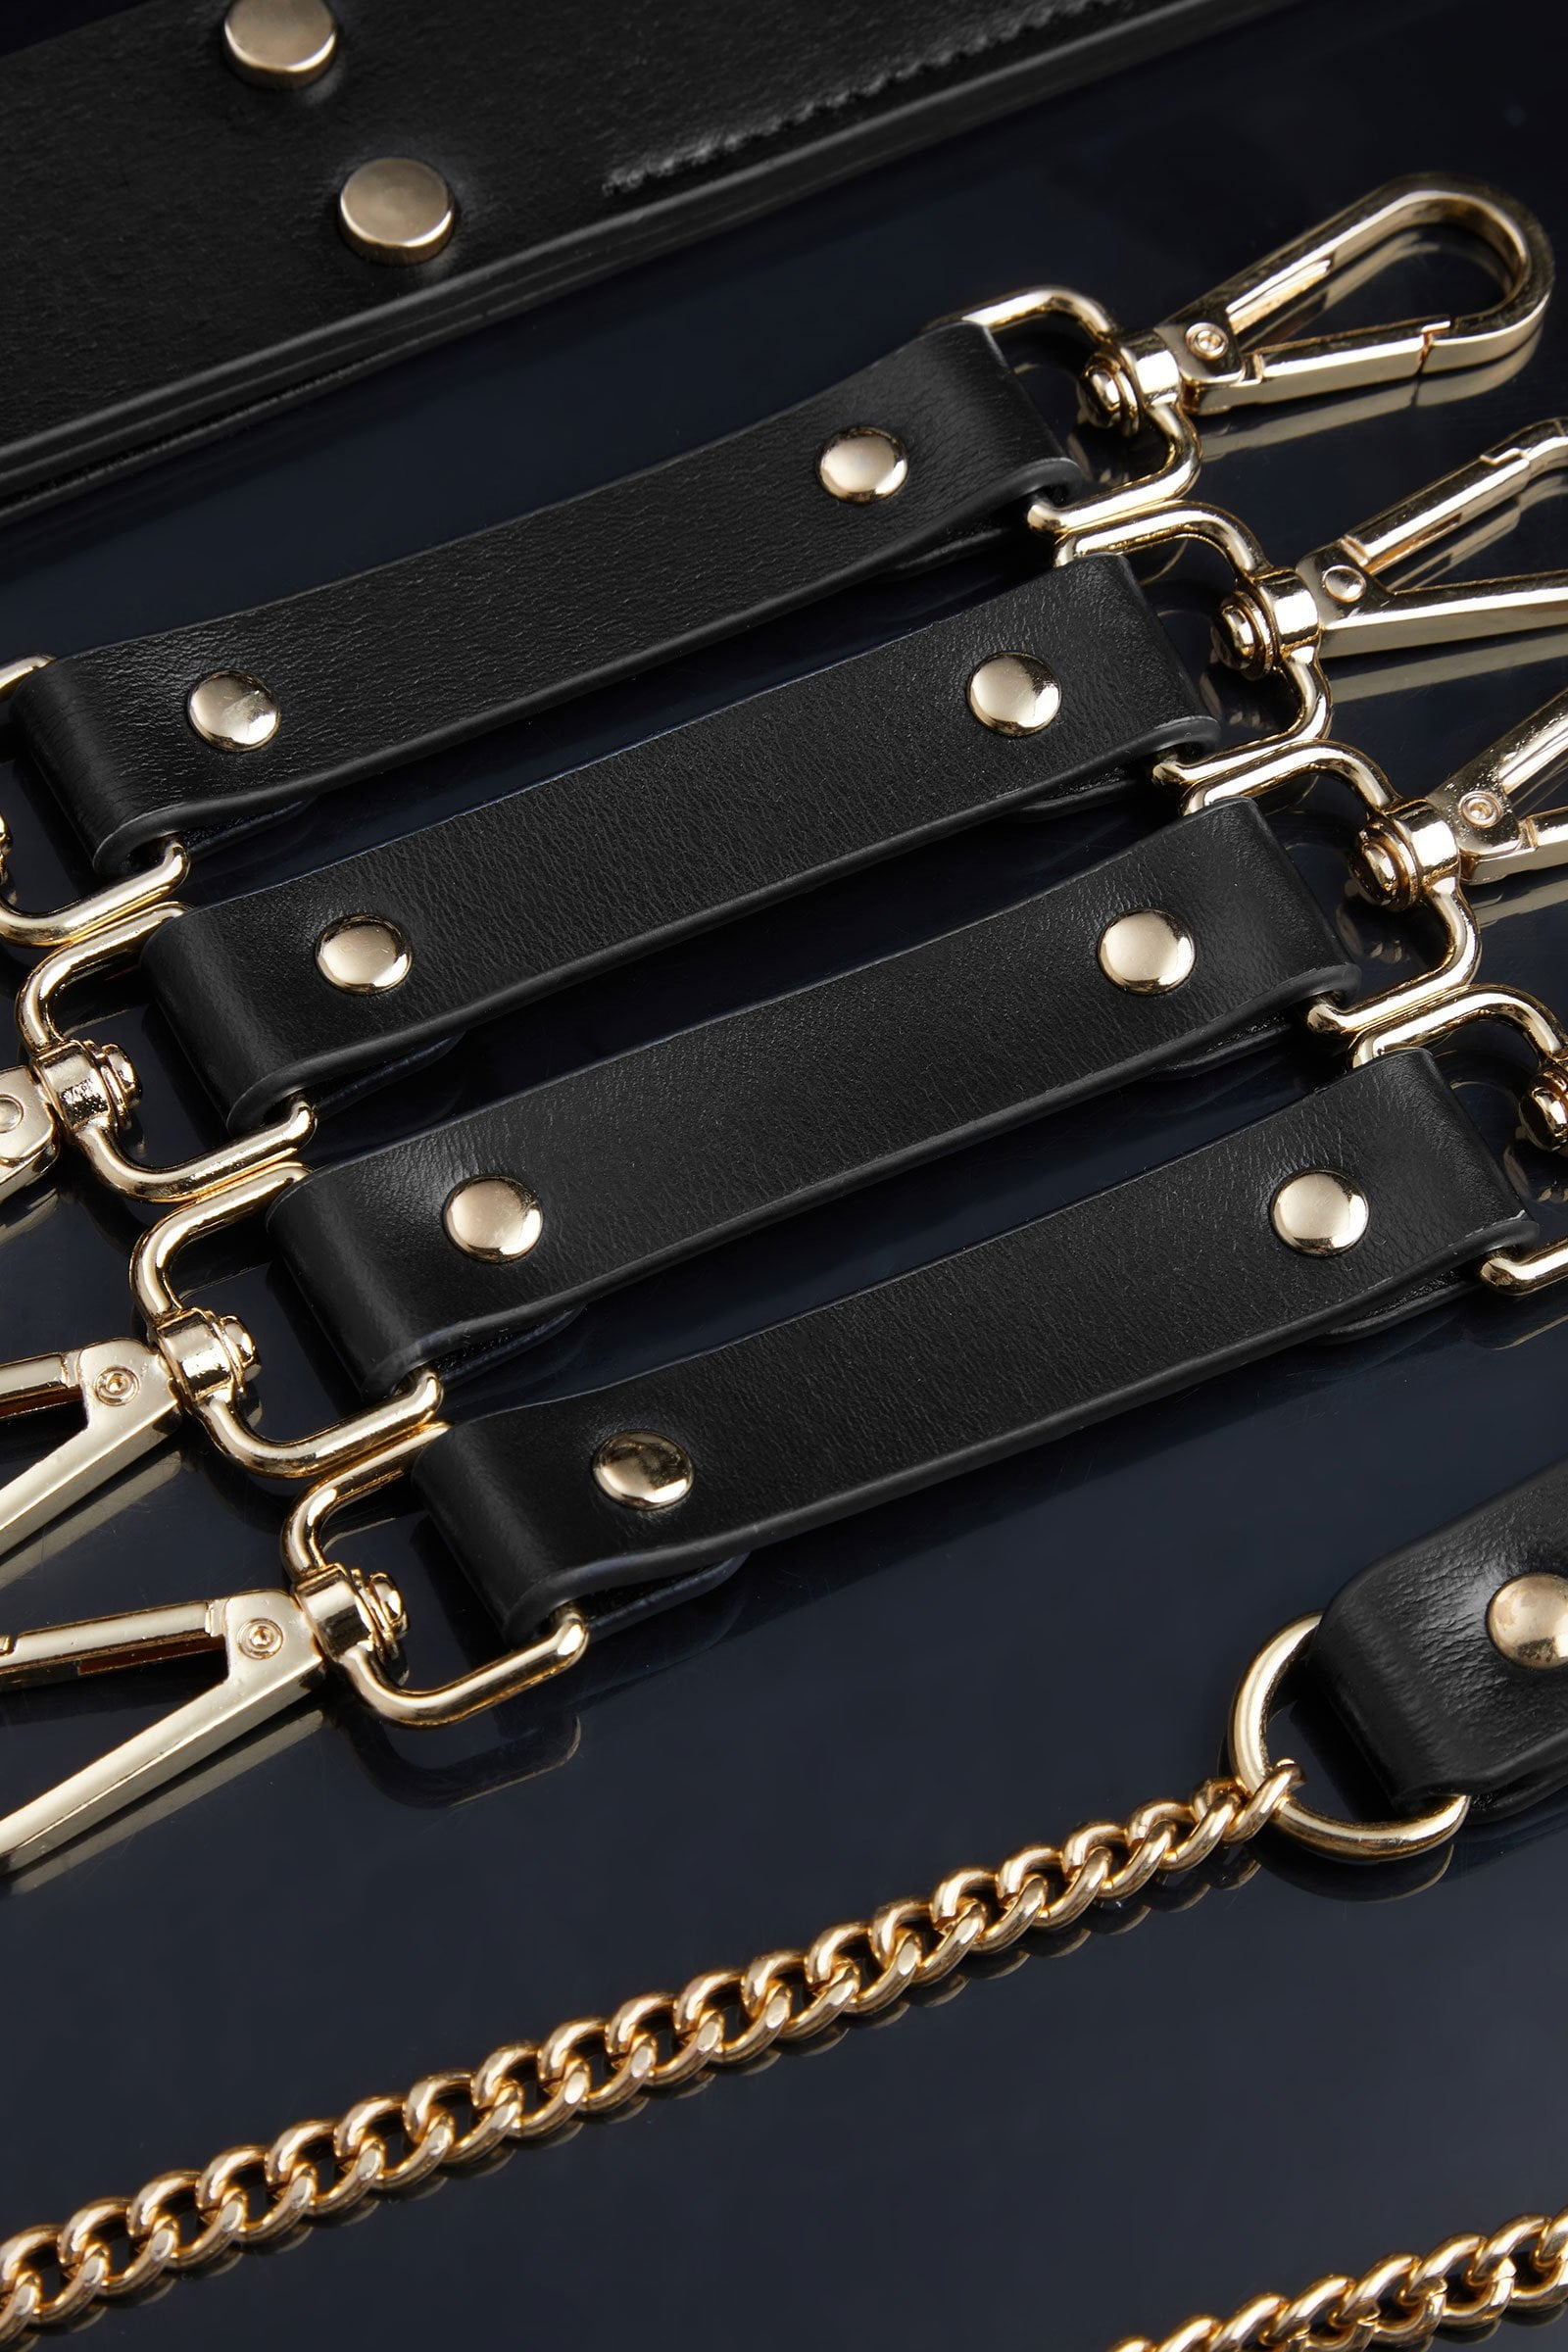 BDSM Luxury 9-pieces Set in Black